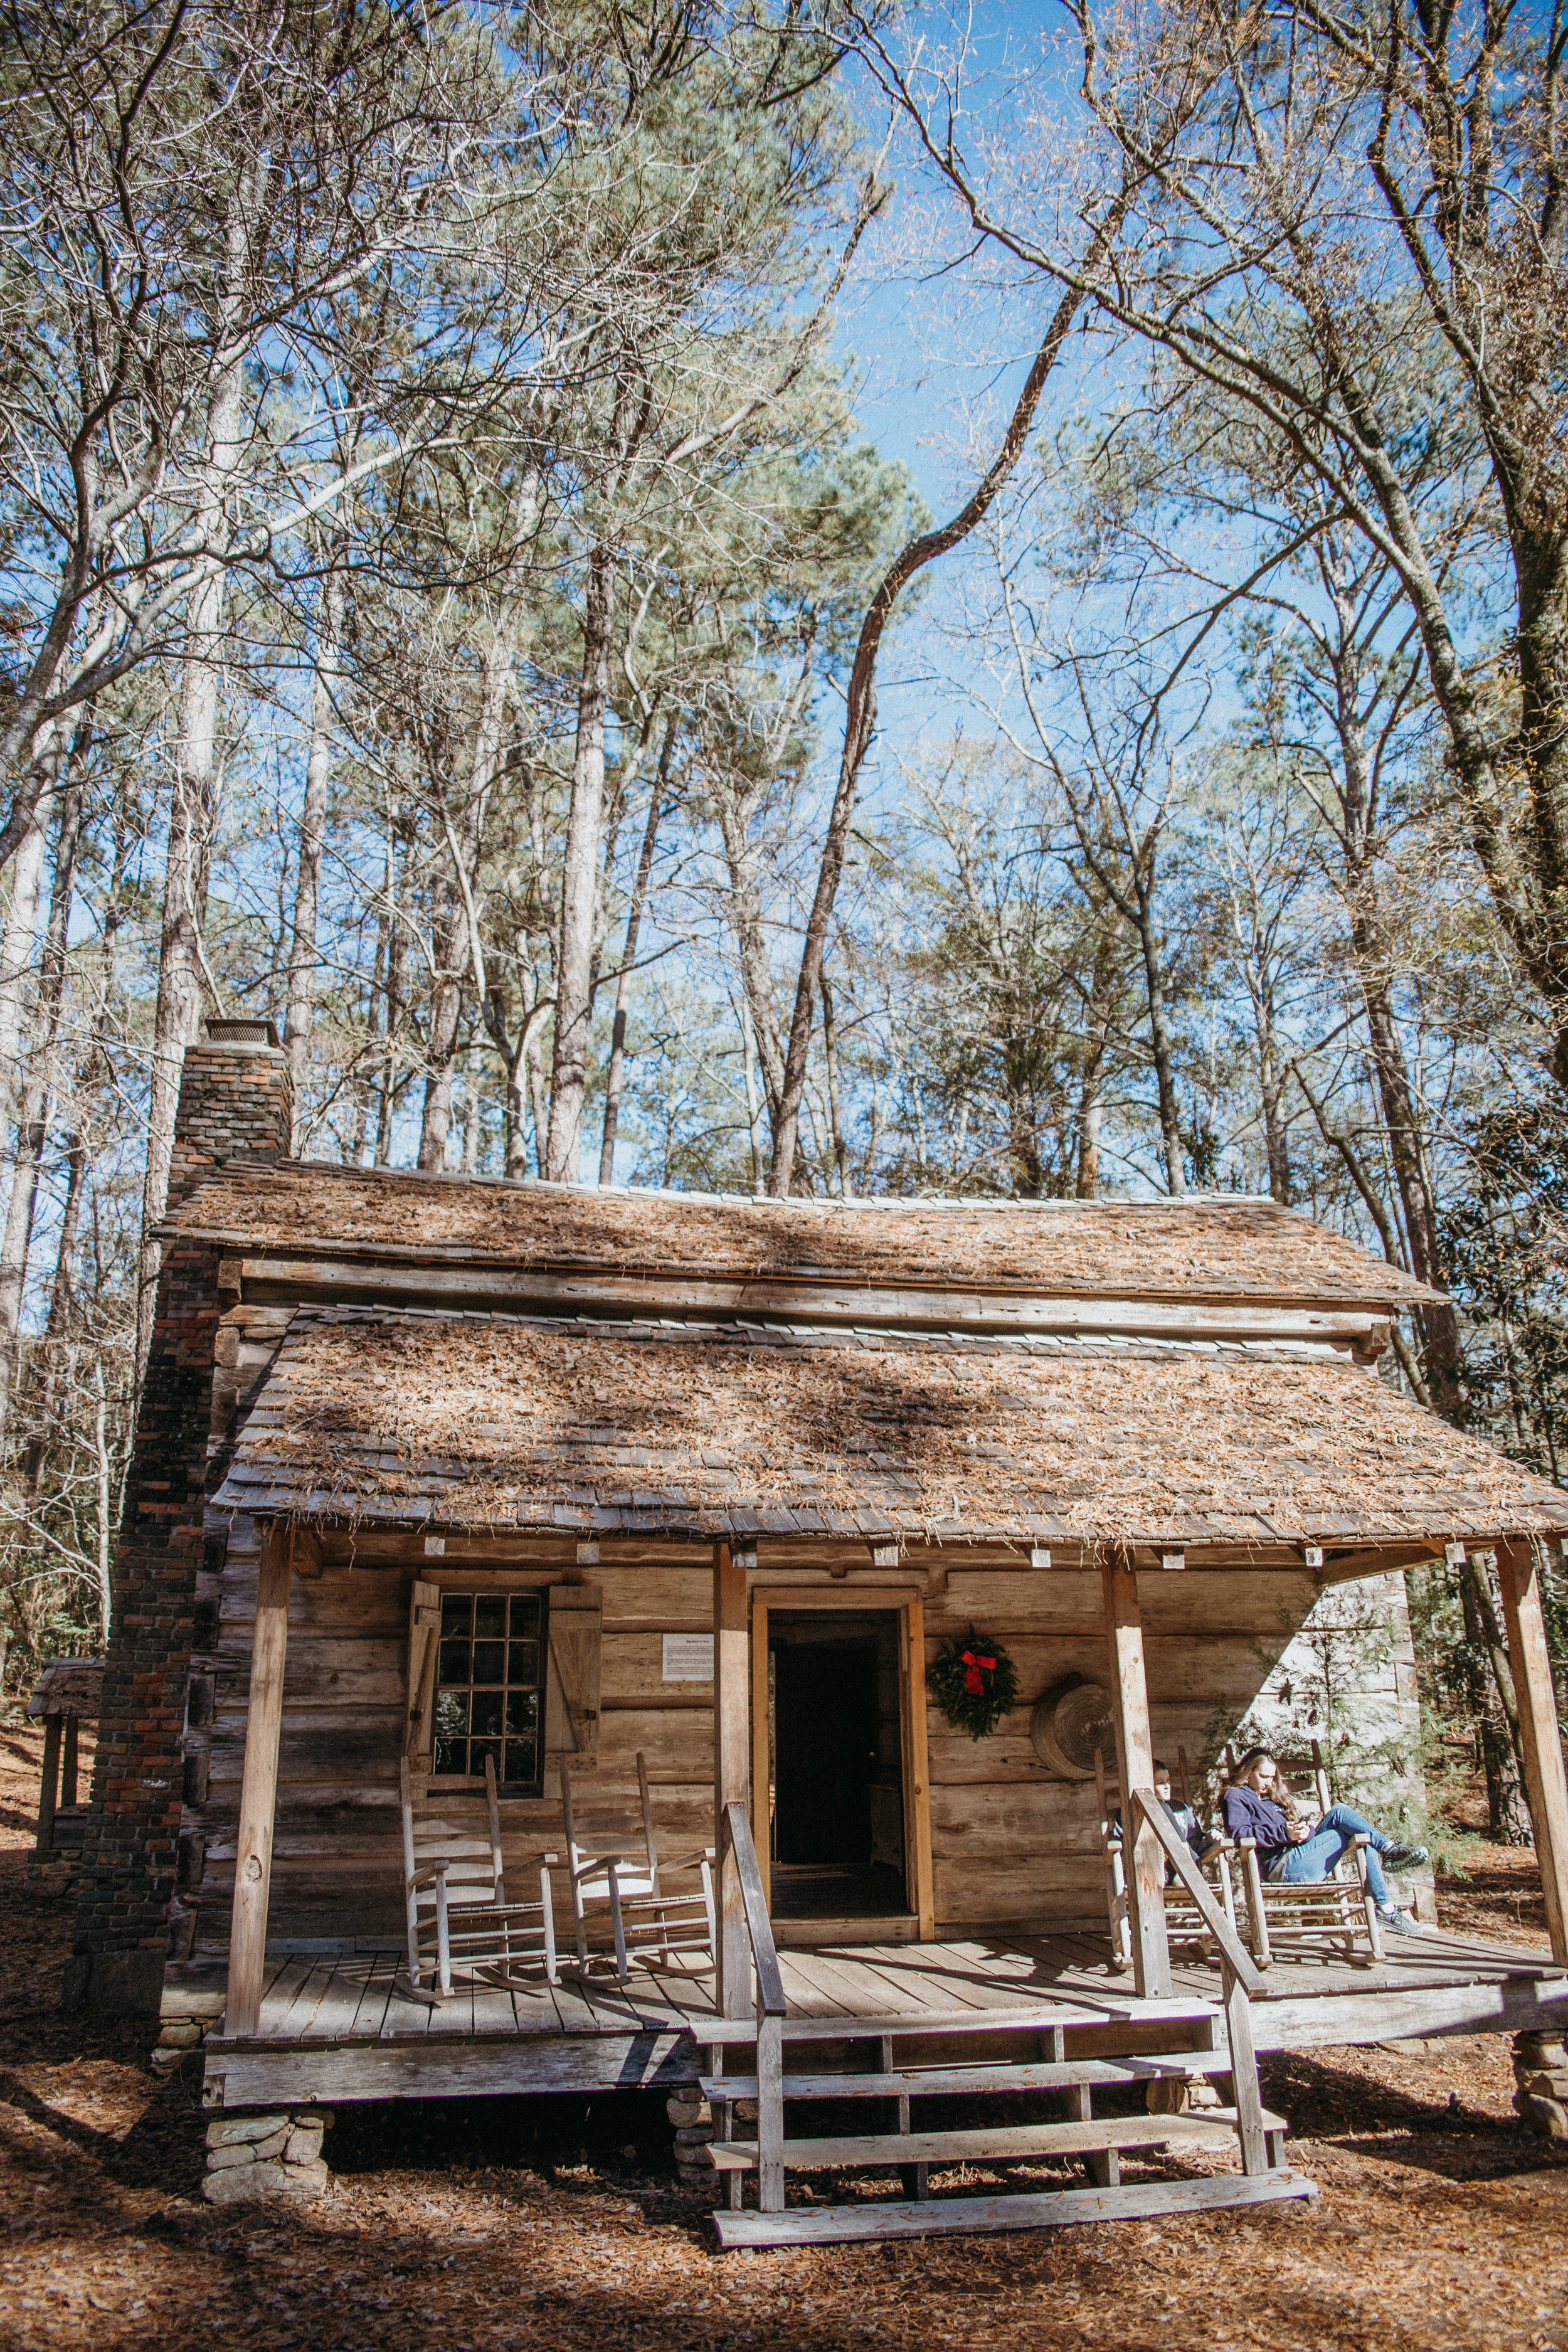 Our first stop at Callaway was the Log Cabin